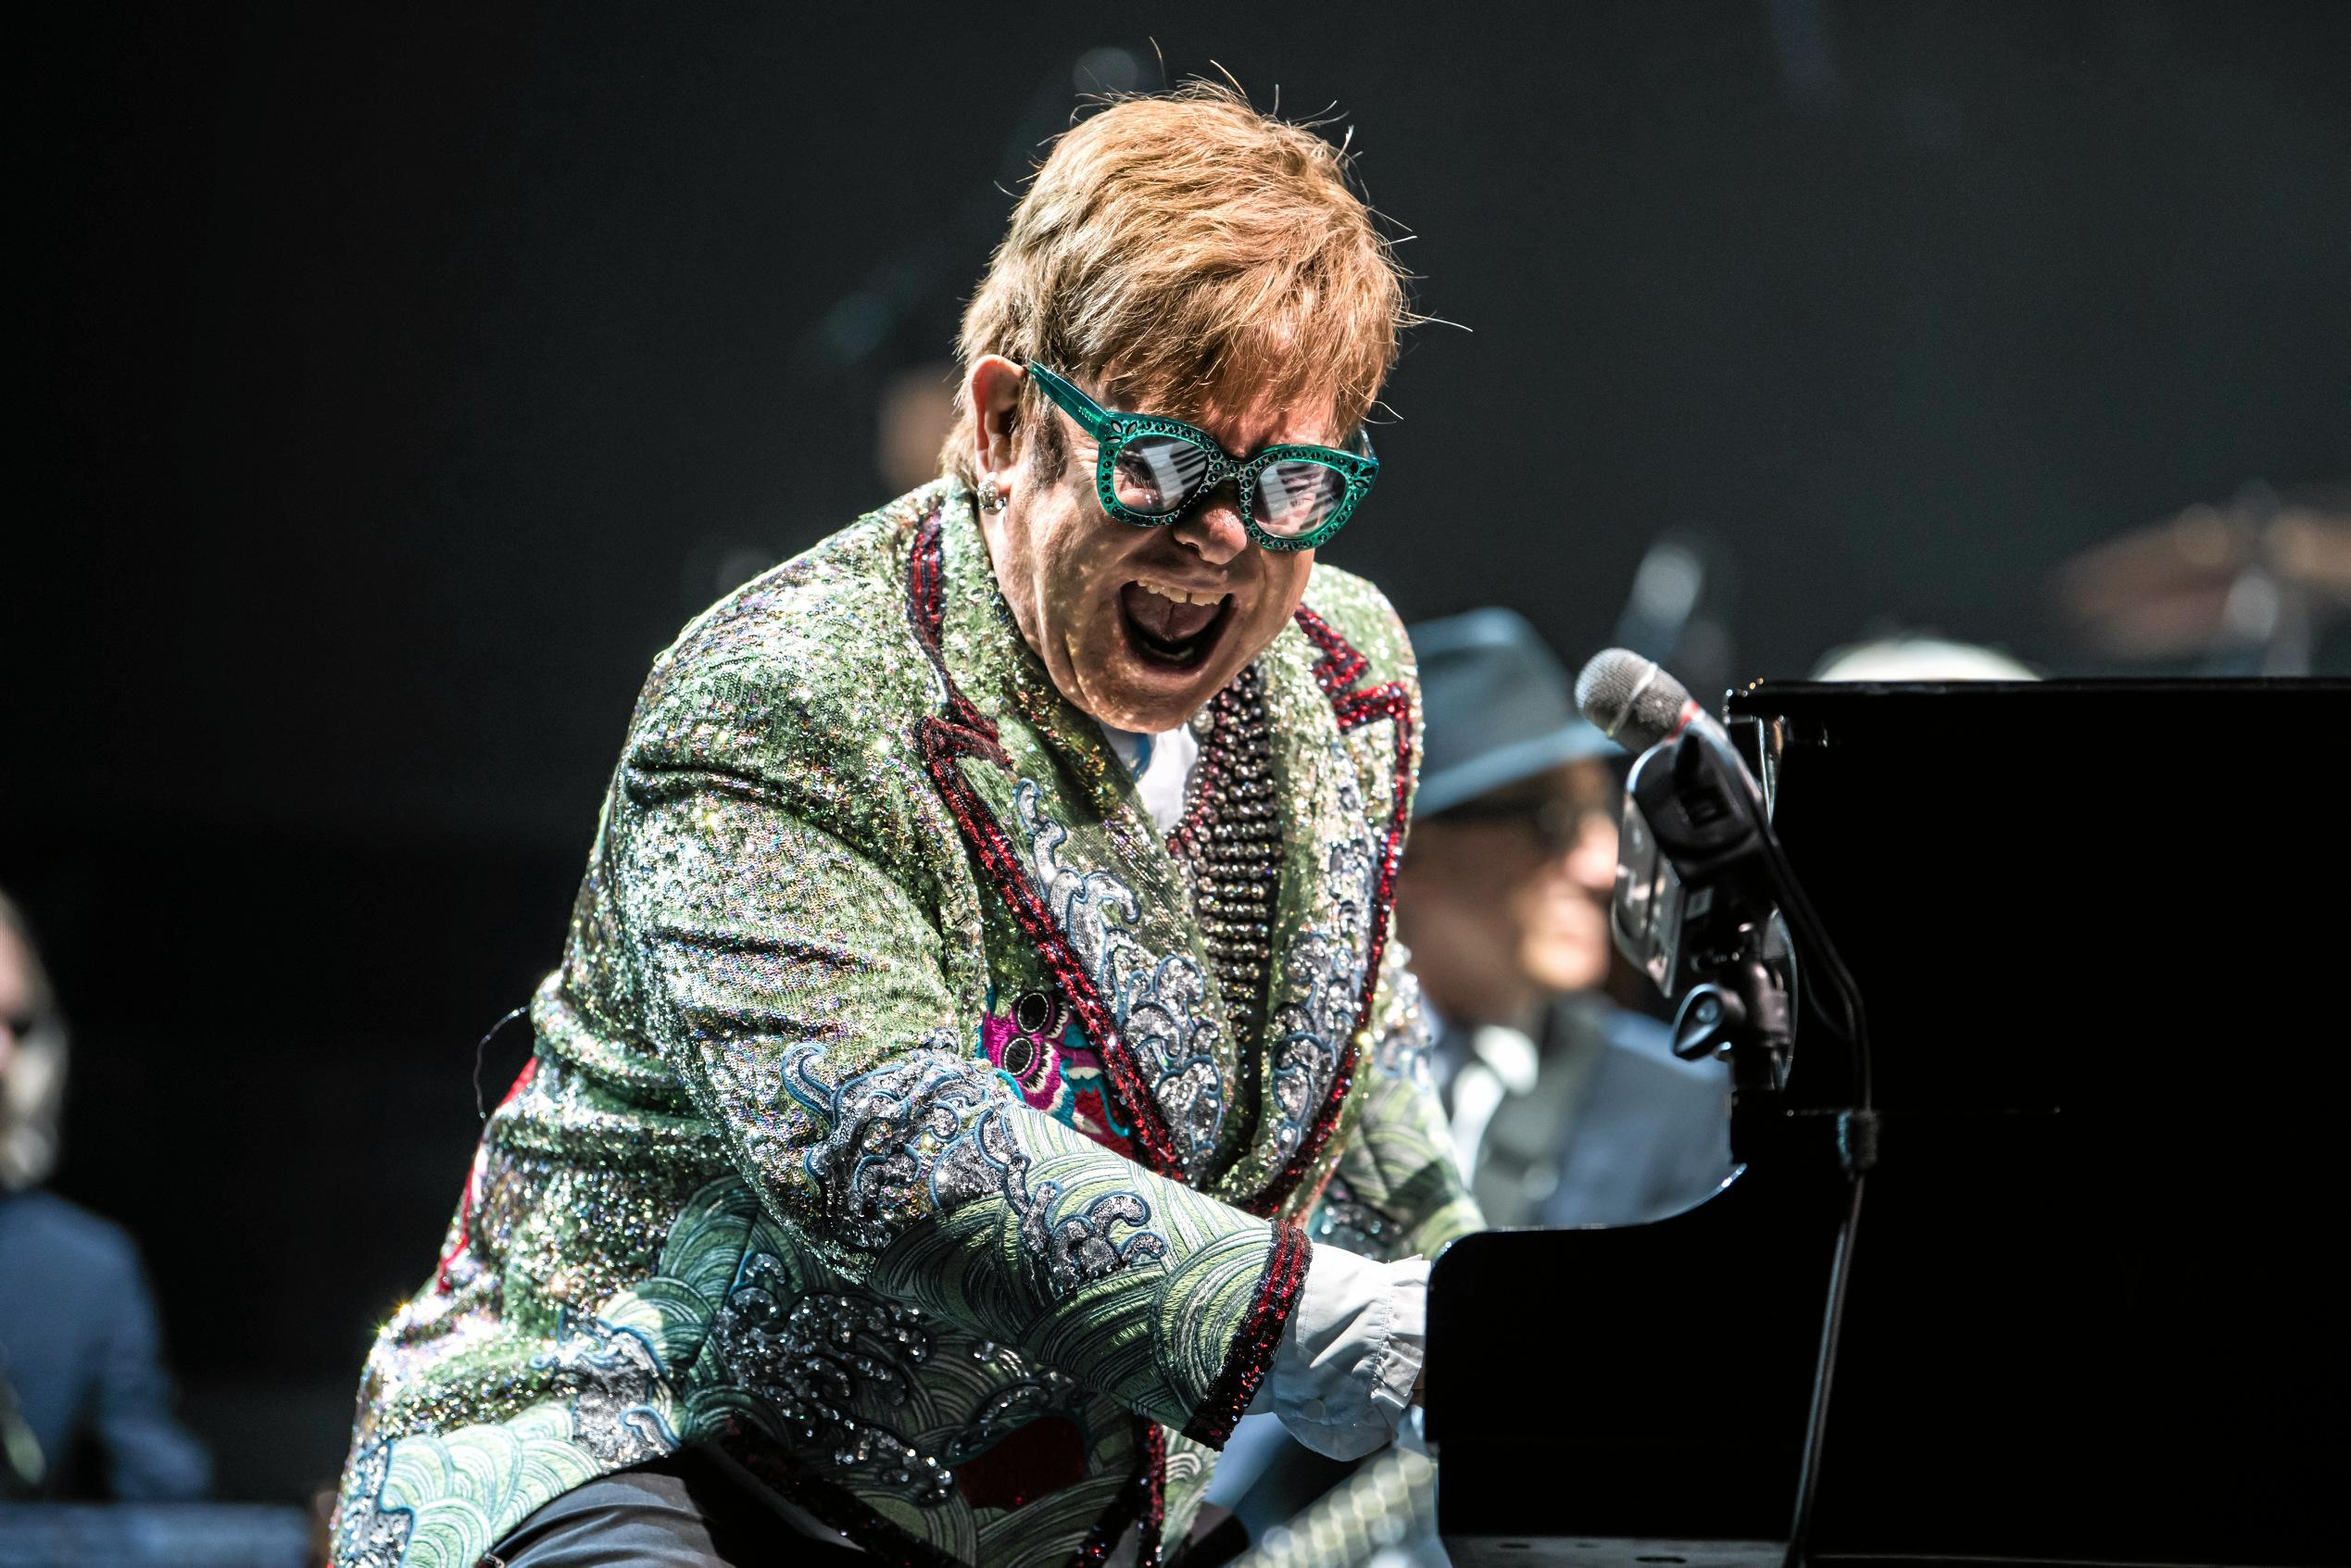 Chugg Entertainment chairman Michael Chugg said Sir Elton John liked playing at interesting places he hadn't been before.